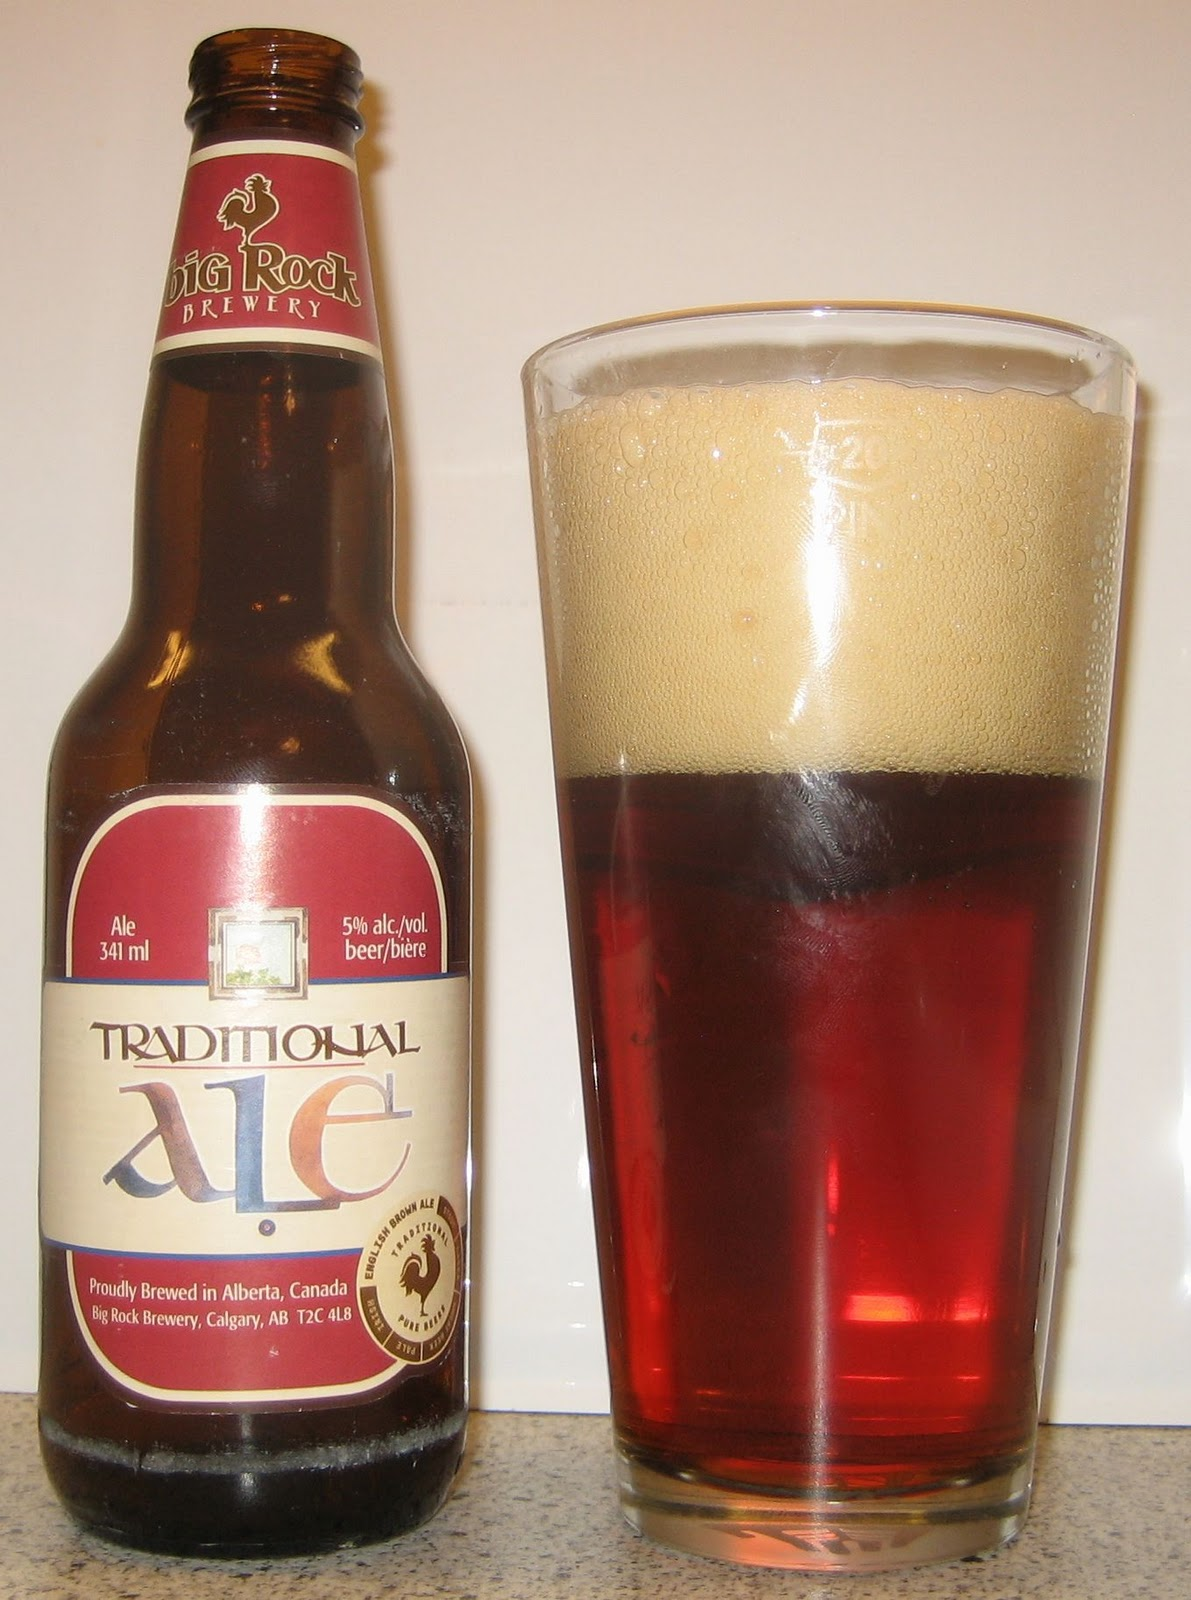 whats your beer of choice? - Tacoma World Forums